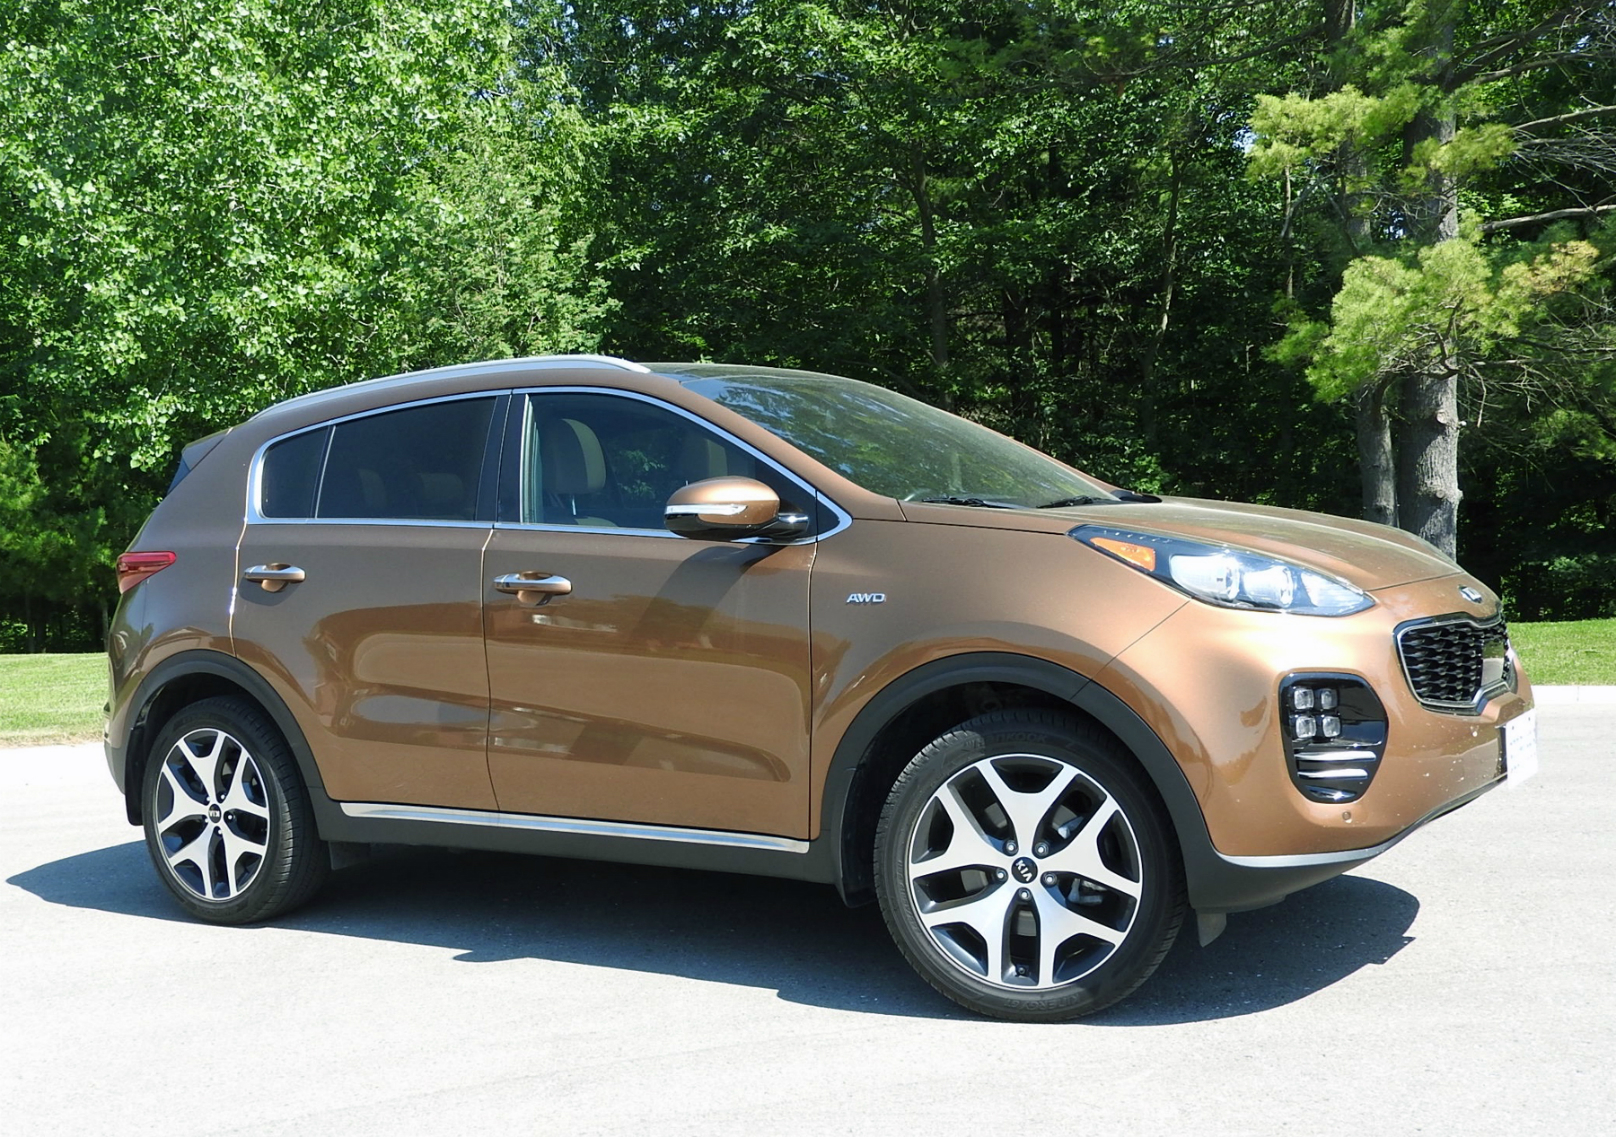 2 Kias For The Price Of One >> Sportage Bigger and Better for 2017 – WHEELS.ca